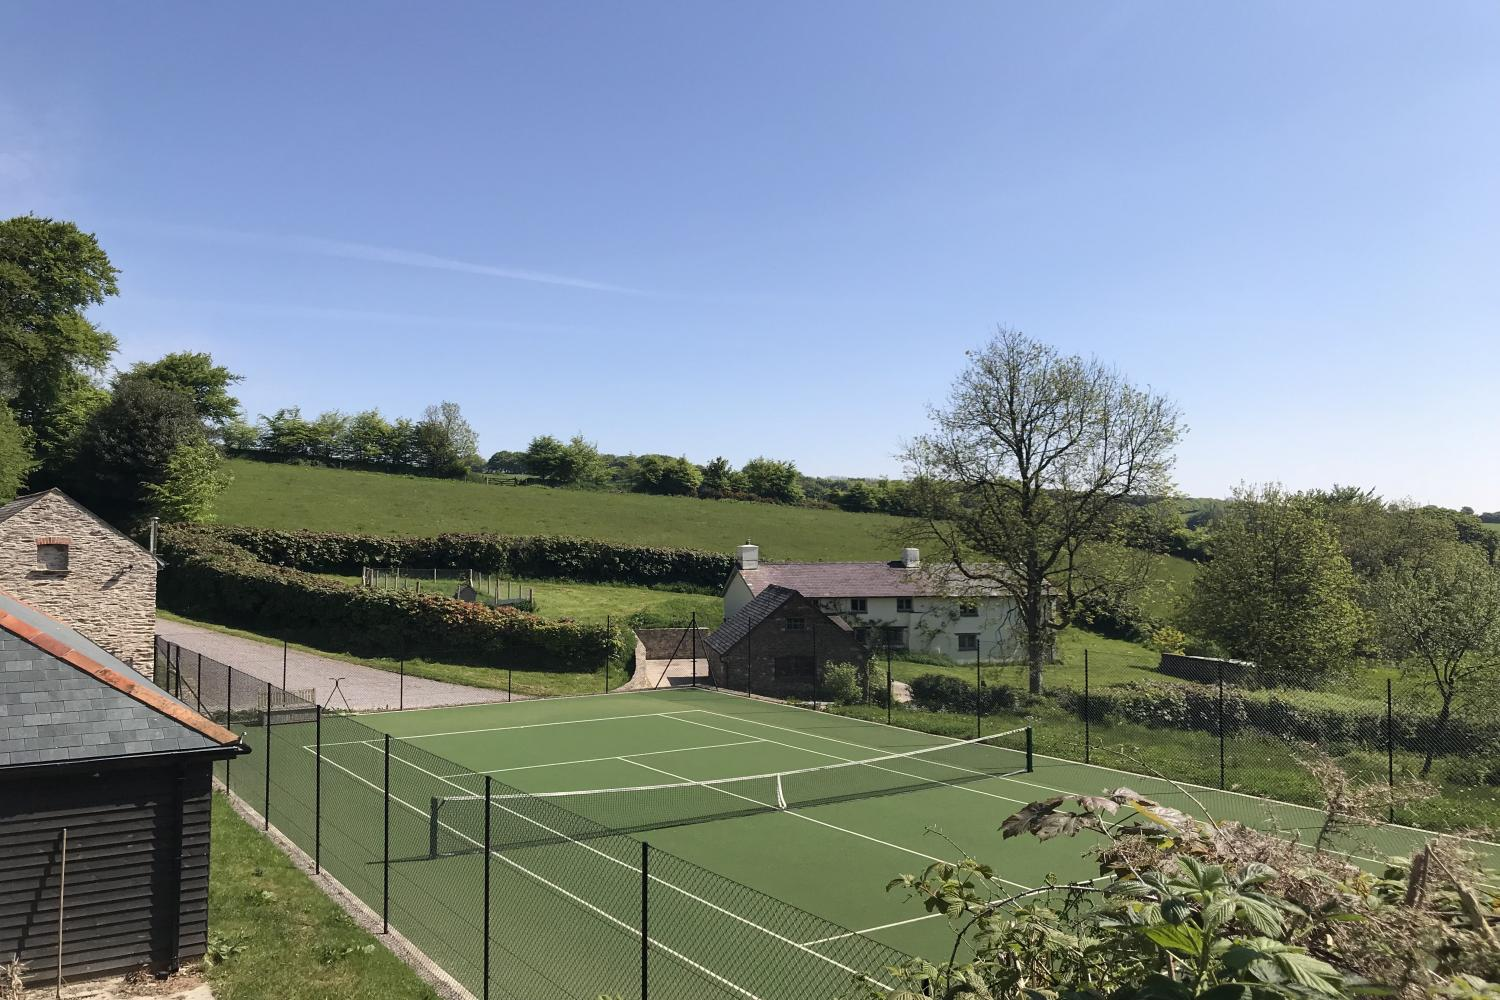 Middle Stolford Cottage and tennis courts